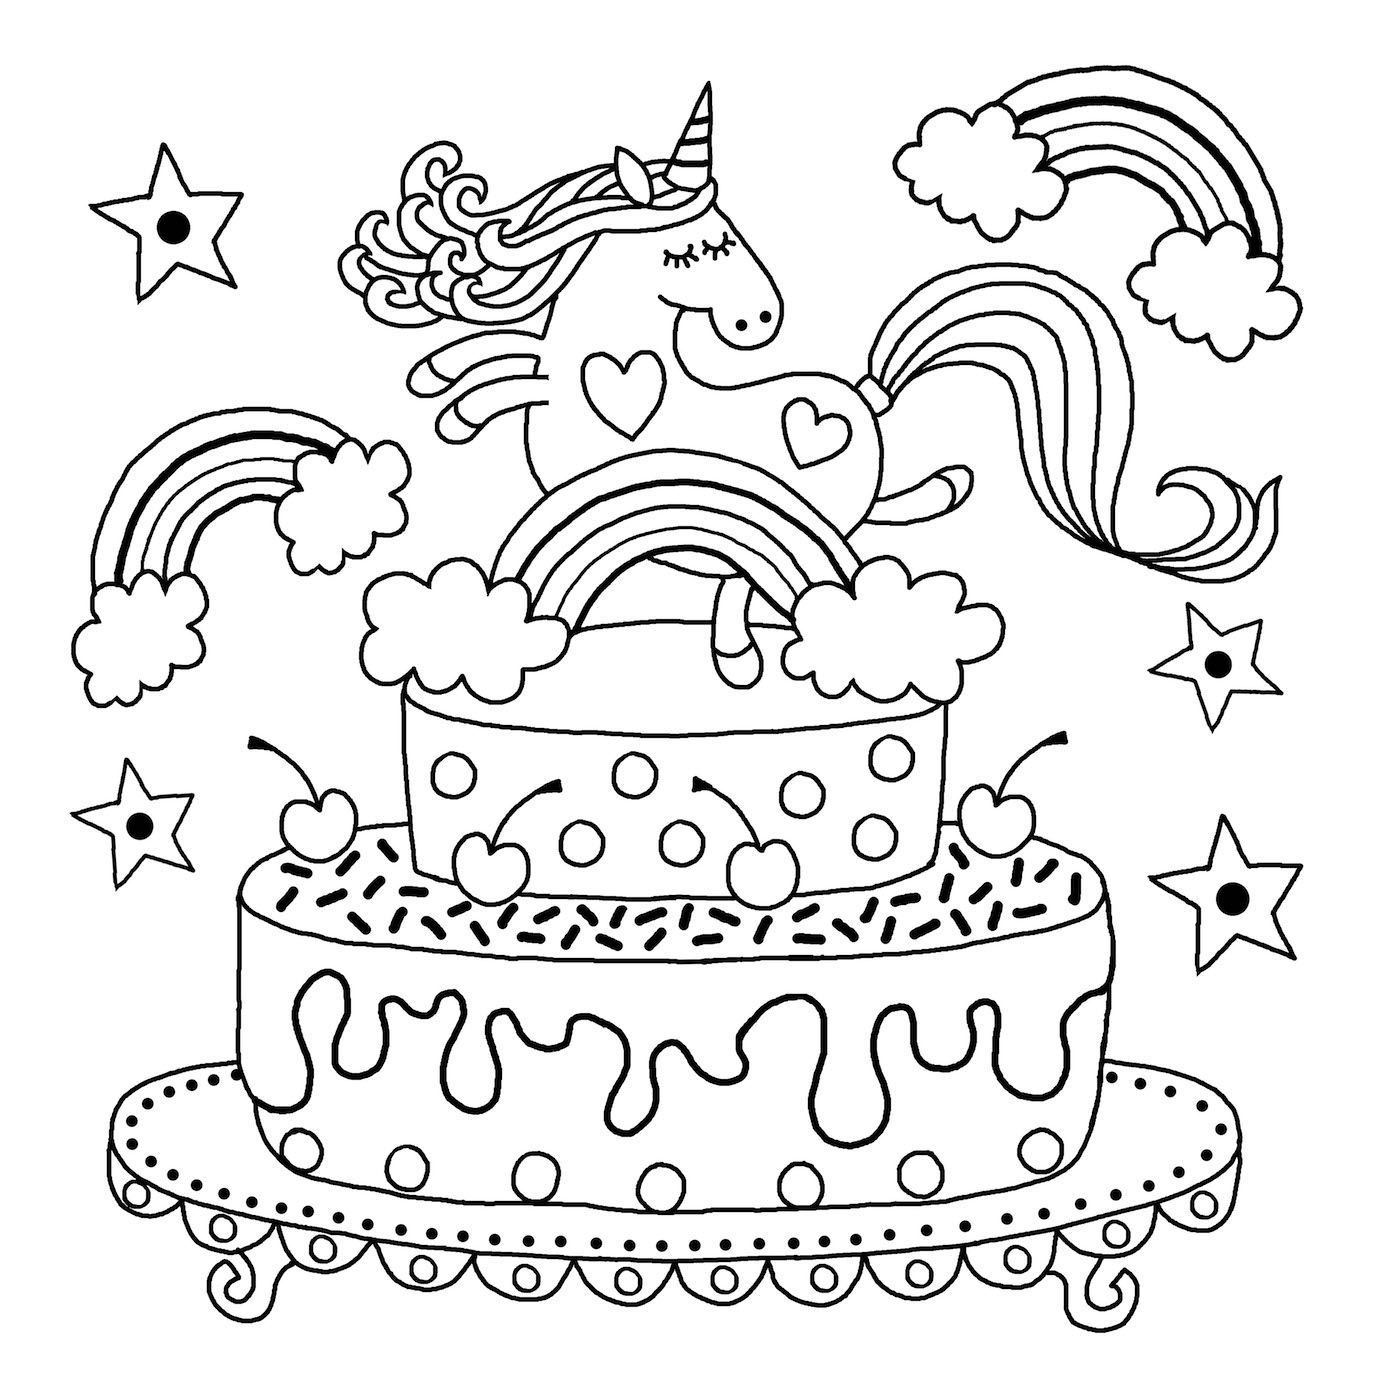 unicorn colouring picture unicorn coloring pages free download on clipartmag colouring picture unicorn